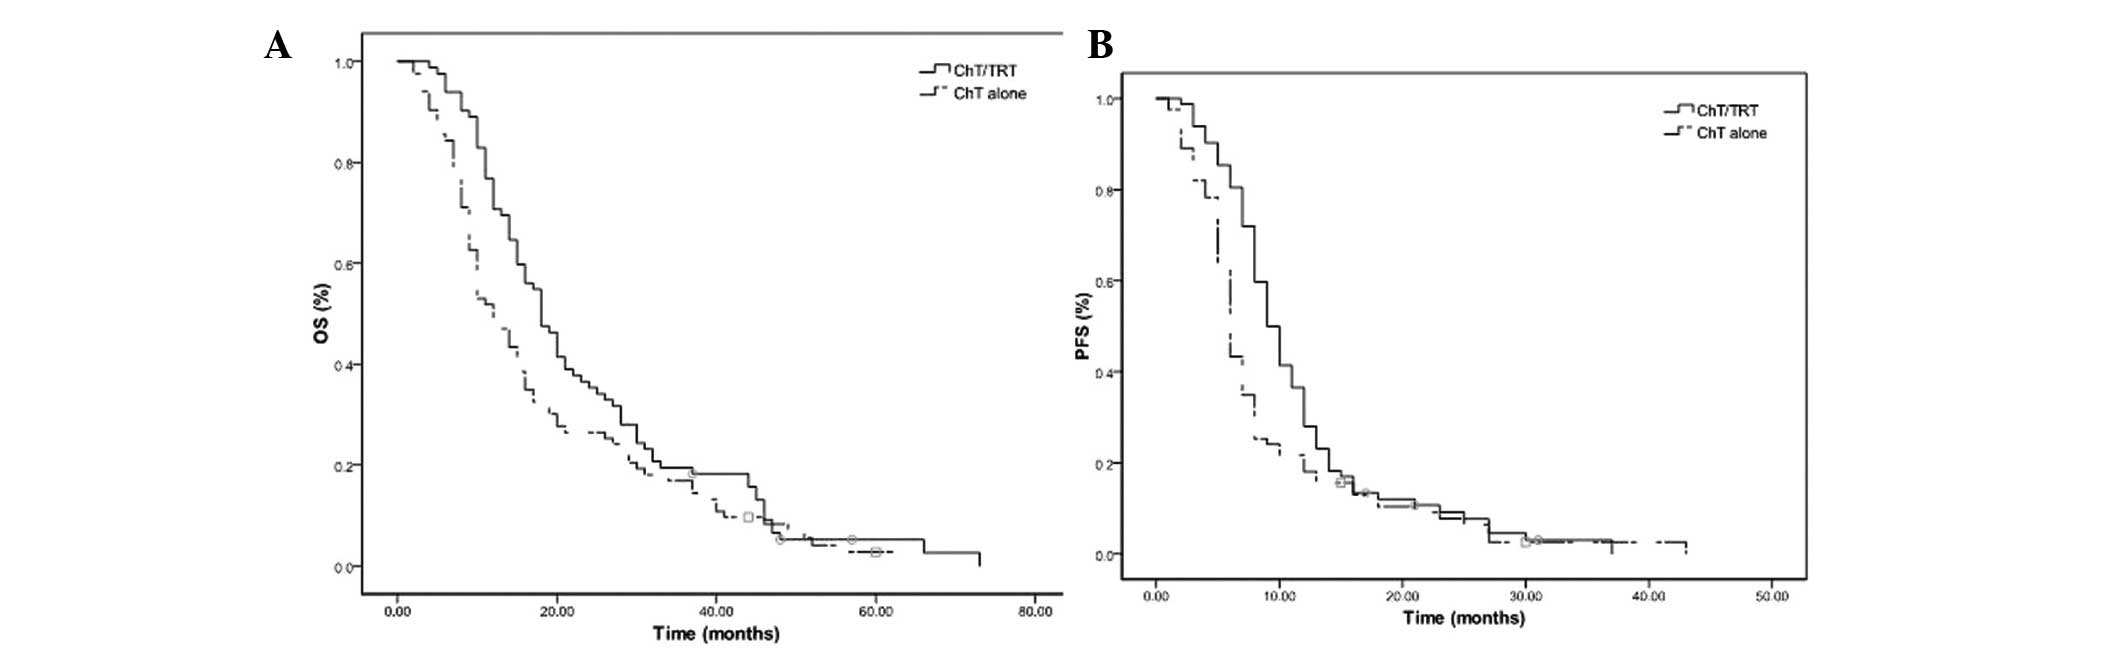 Efficacy of 3D conformal thoracic radiotherapy for extensive